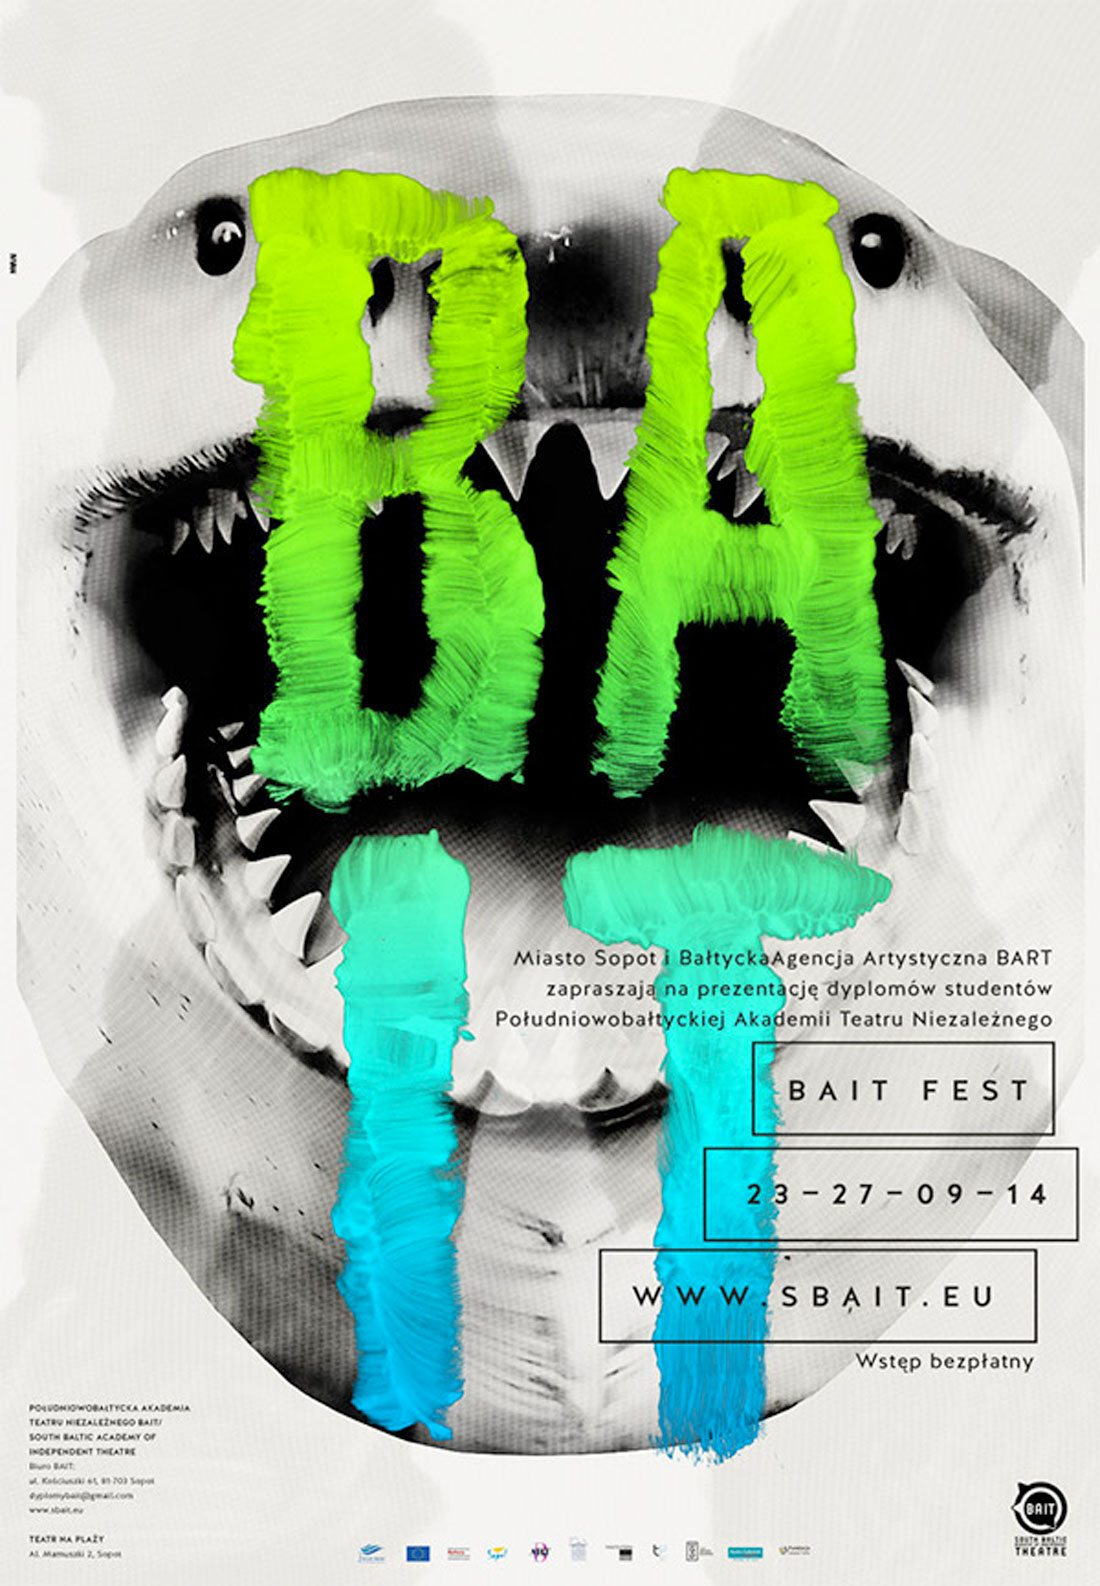 bait 10 Tips for Perfect Poster Design design tips